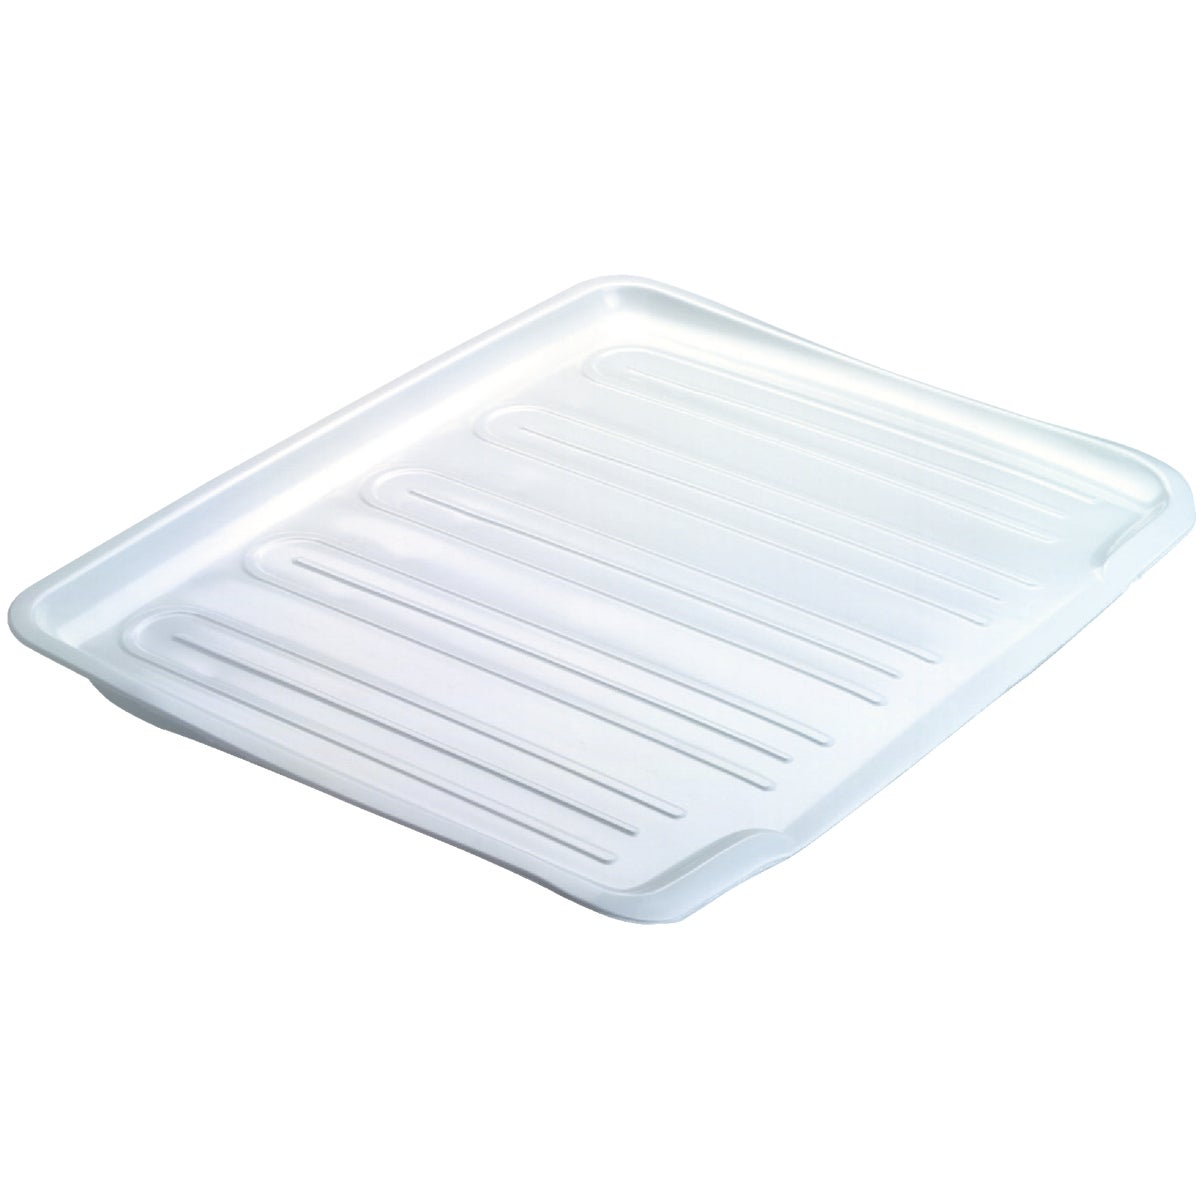 Rubbermaid LARGE WHITE DRAINER TRAY 1182MAWHT